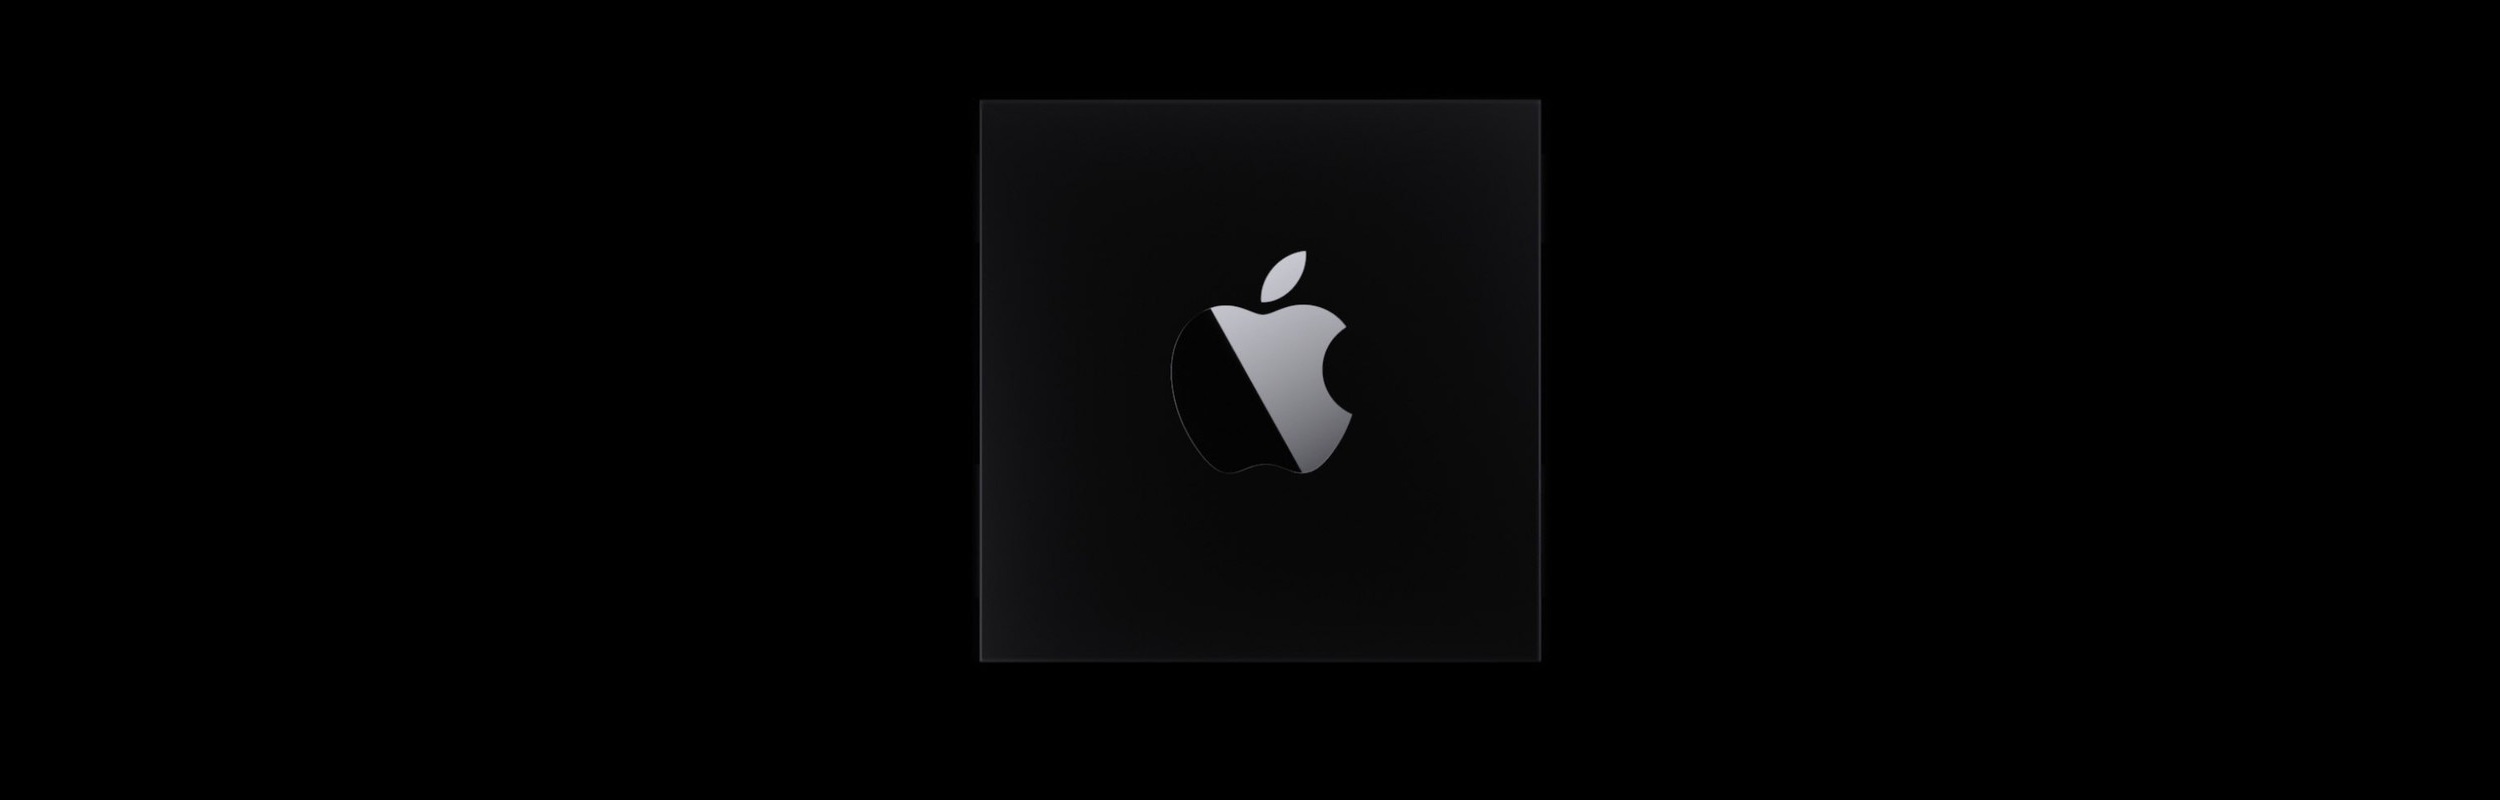 Apple Silicon: Everything you need to know about the new ARM processors